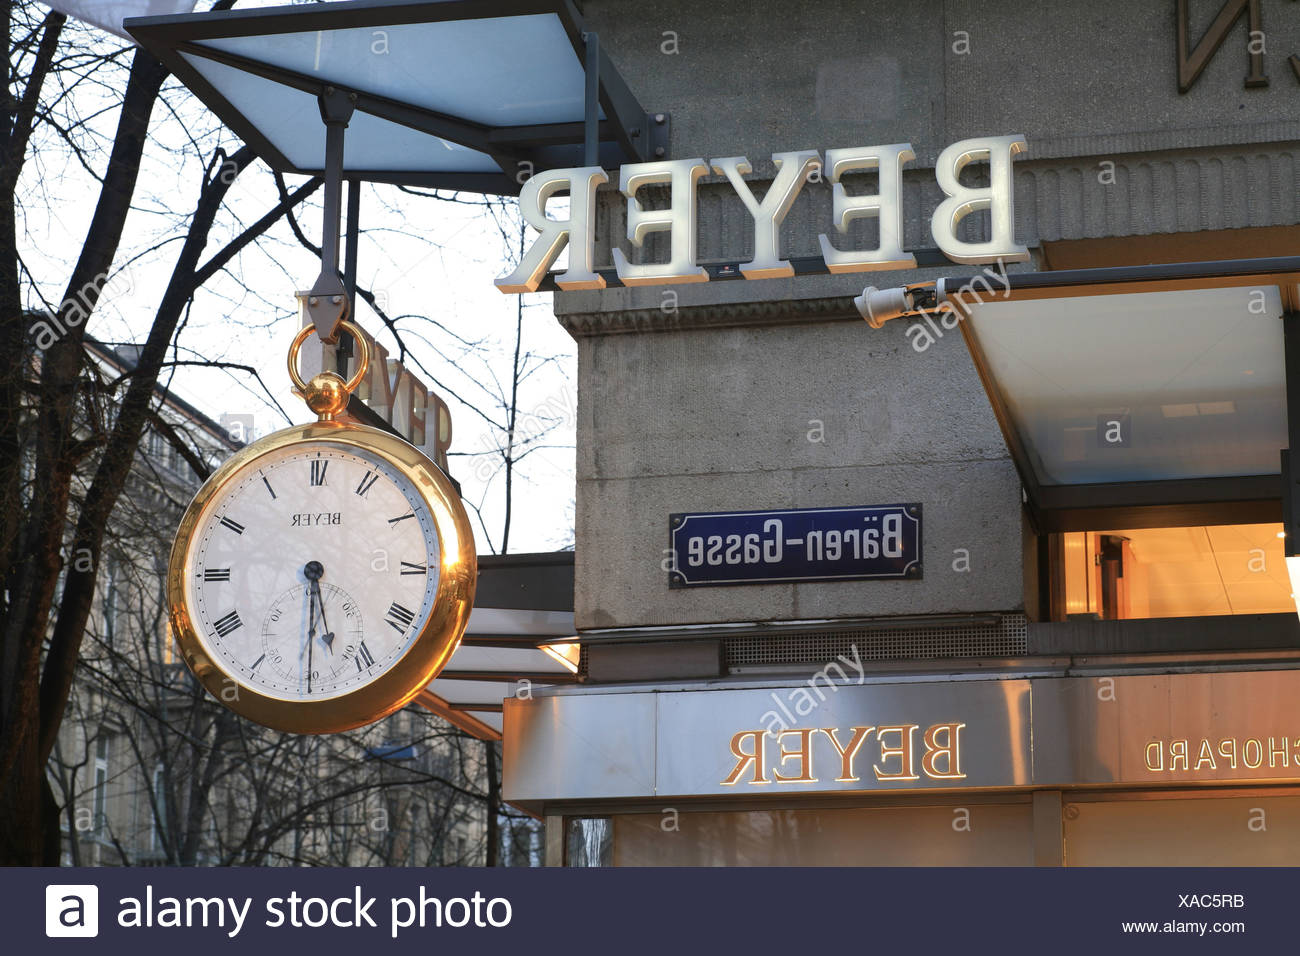 Beyer jeweler at Bahnhofstrasse, Zurich, Switzerland - Stock Image